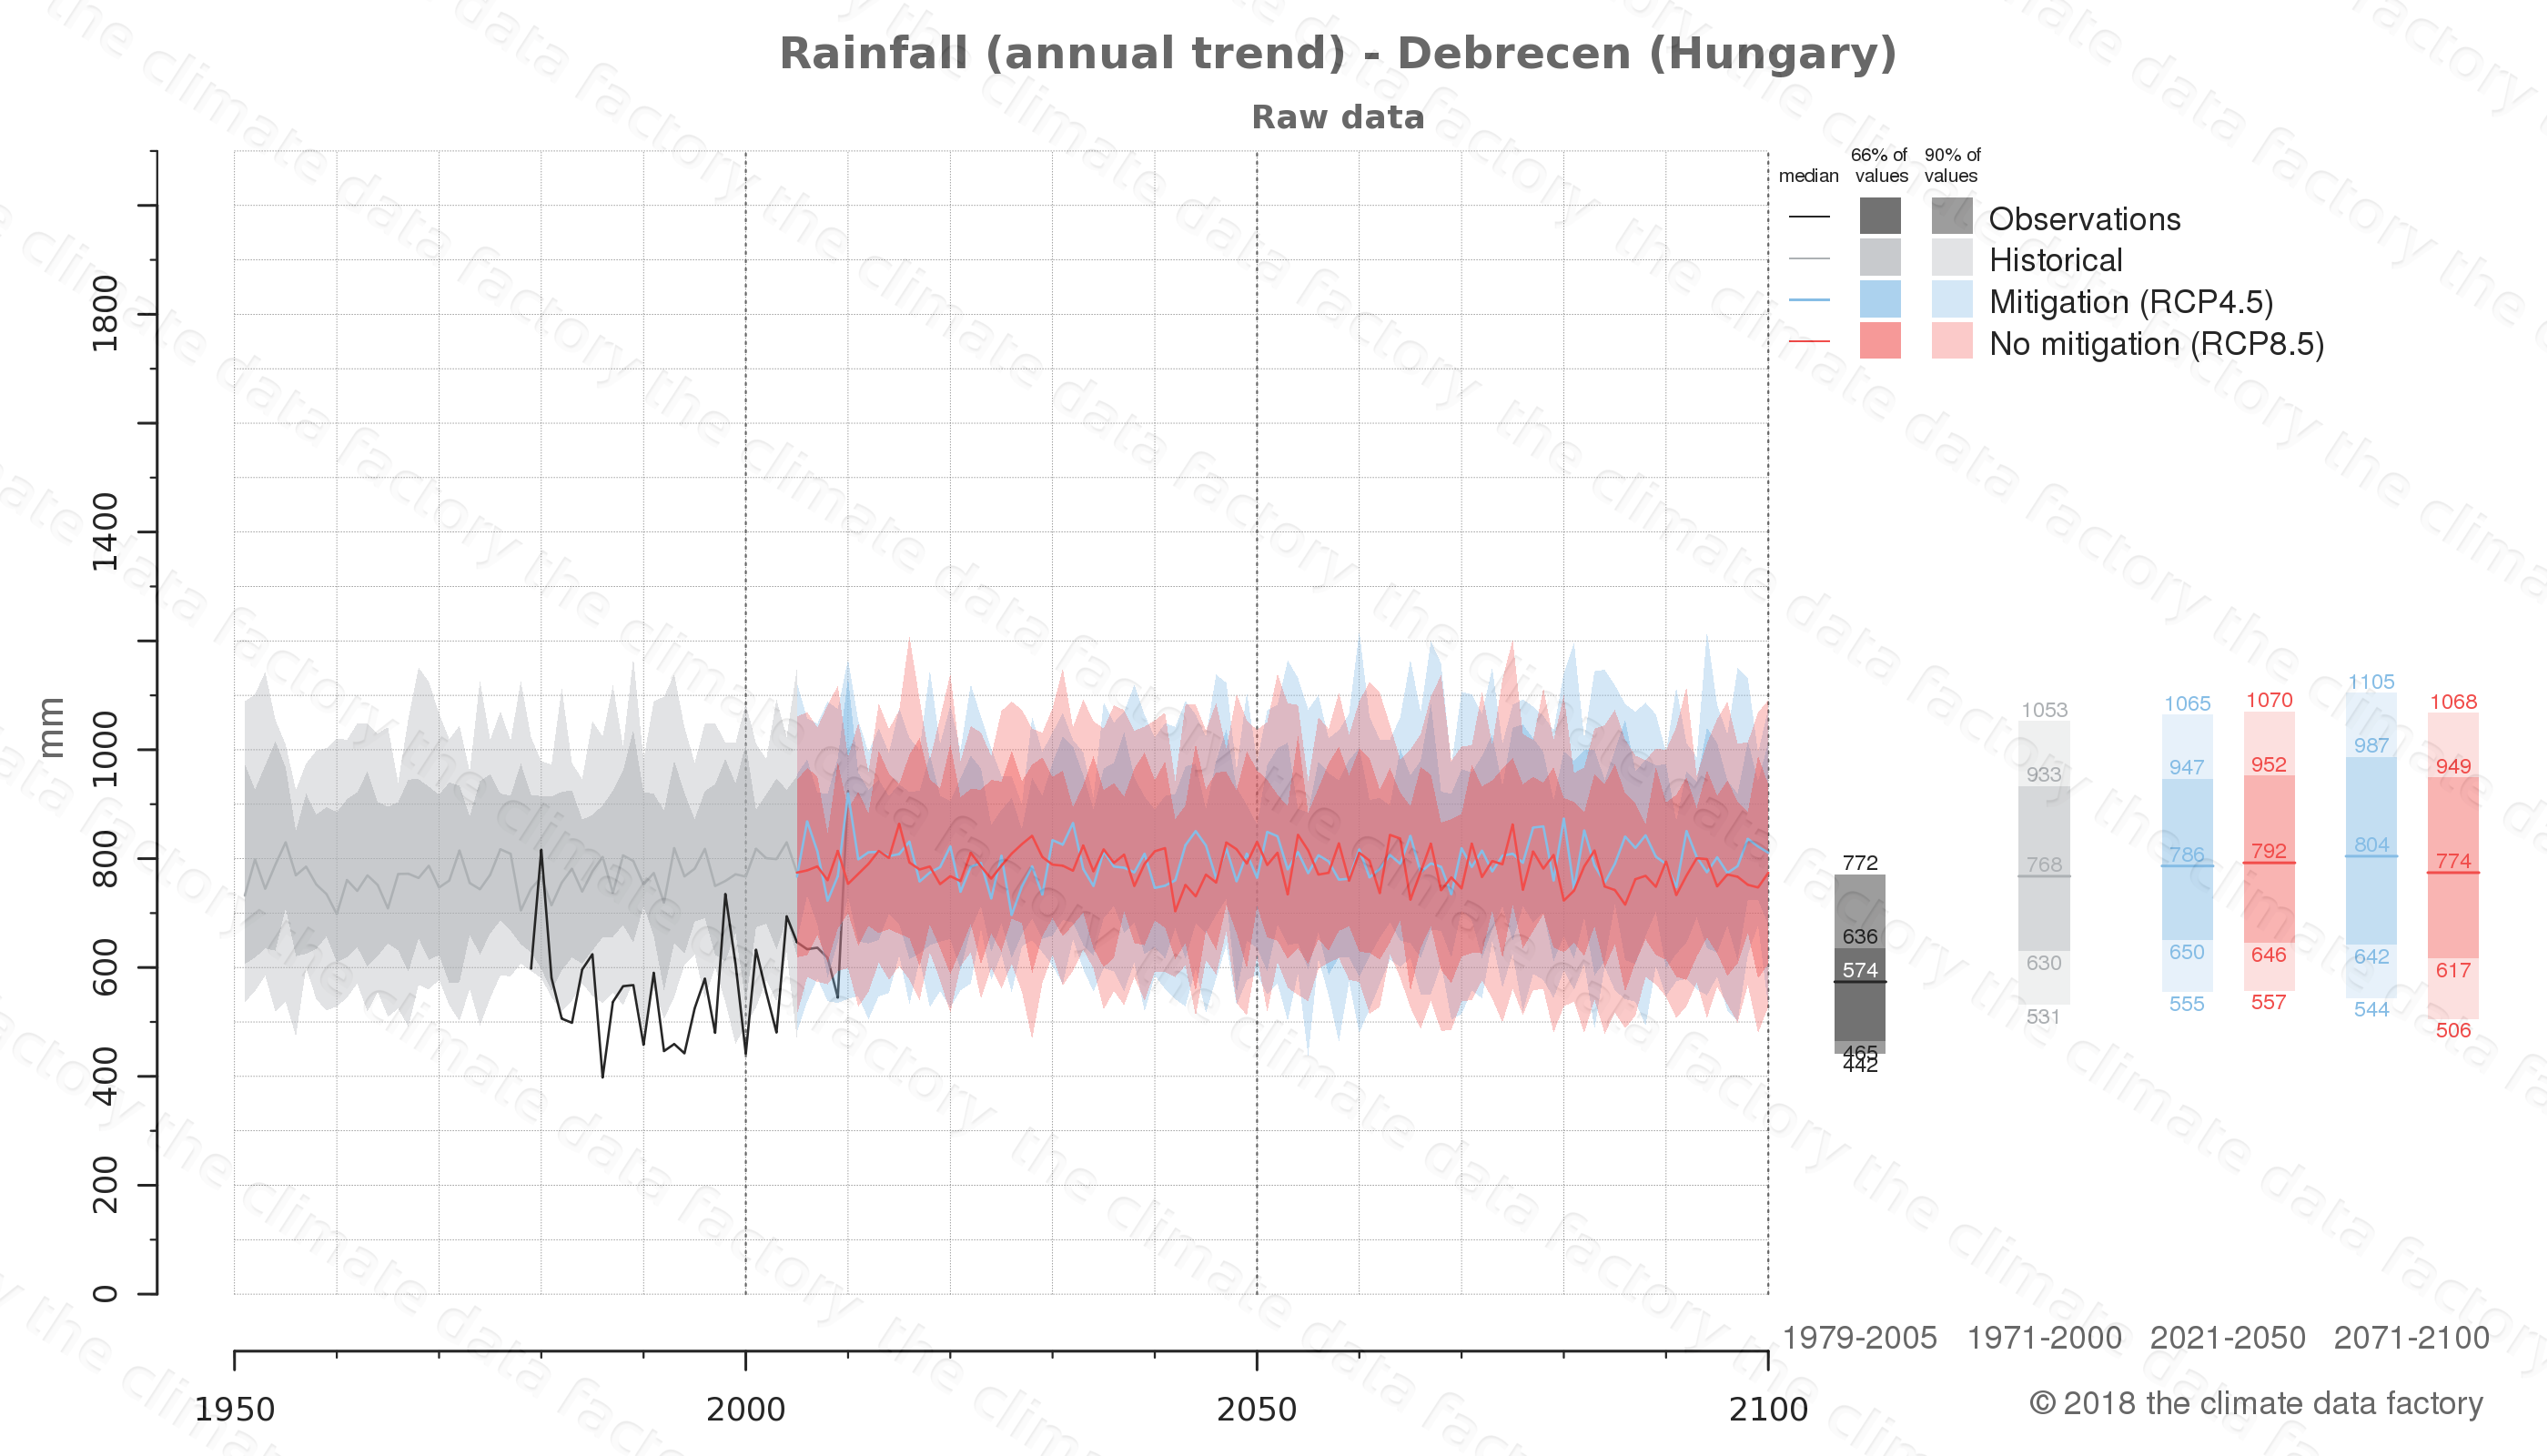 climate change data policy adaptation climate graph city data rainfall debrecen hungary